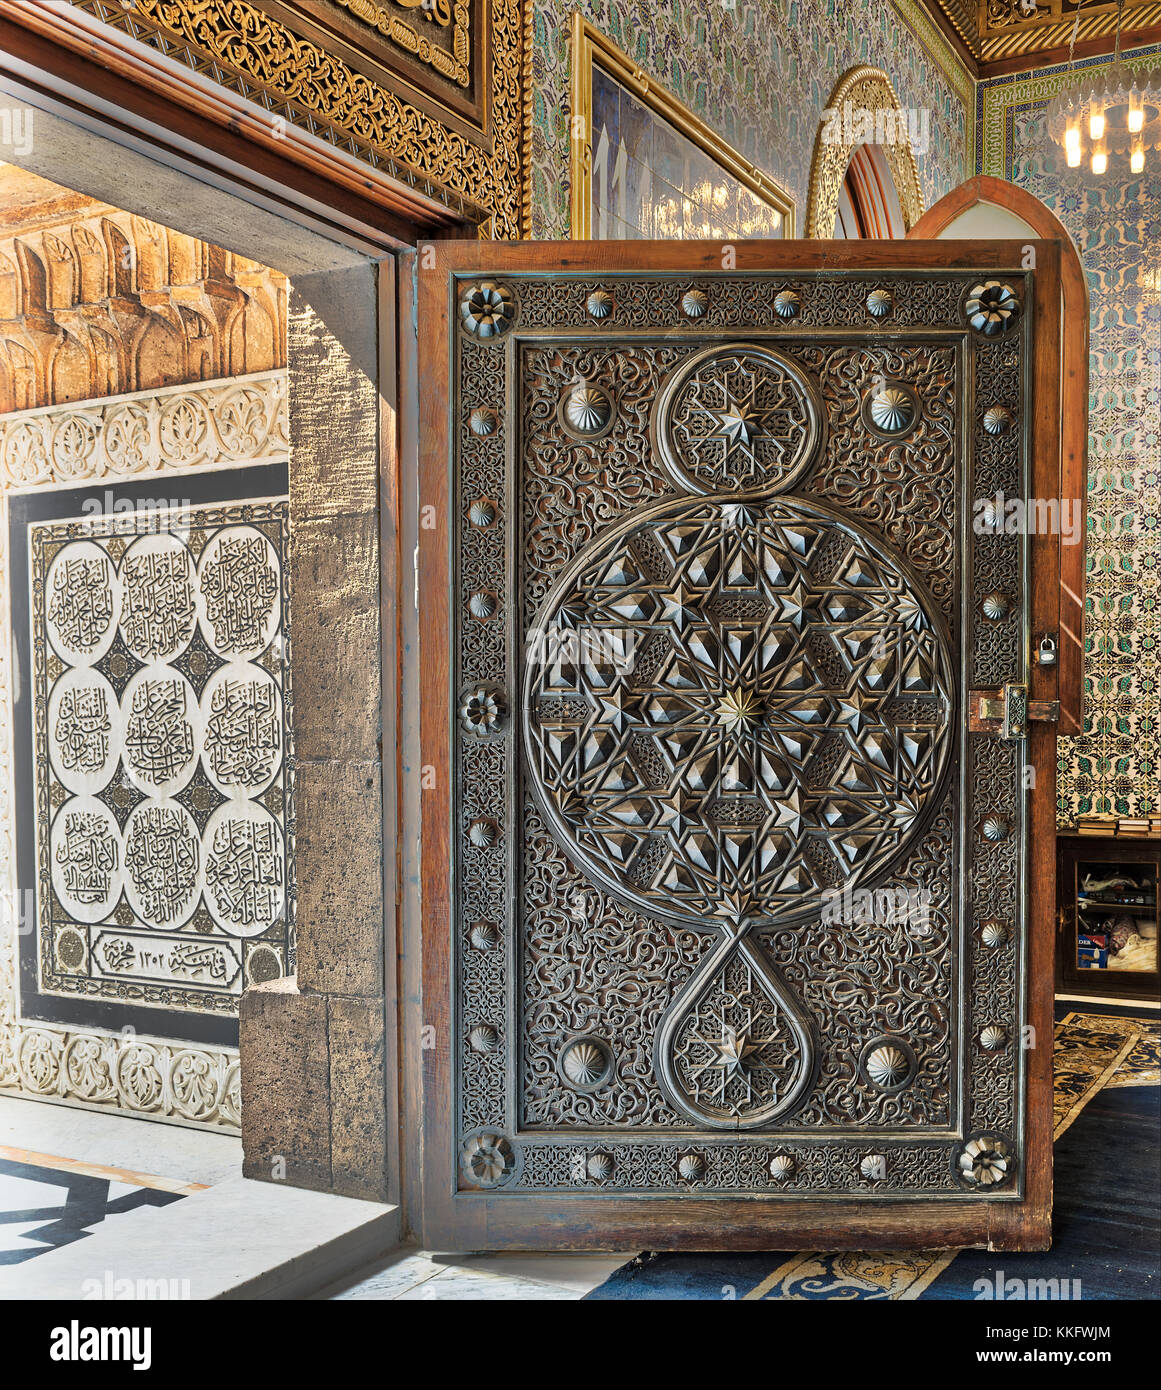 Opened wooden aged door with ornate bronzed floral patterns at the mosque of The Manial Palace of Prince Mohammed - Stock Image